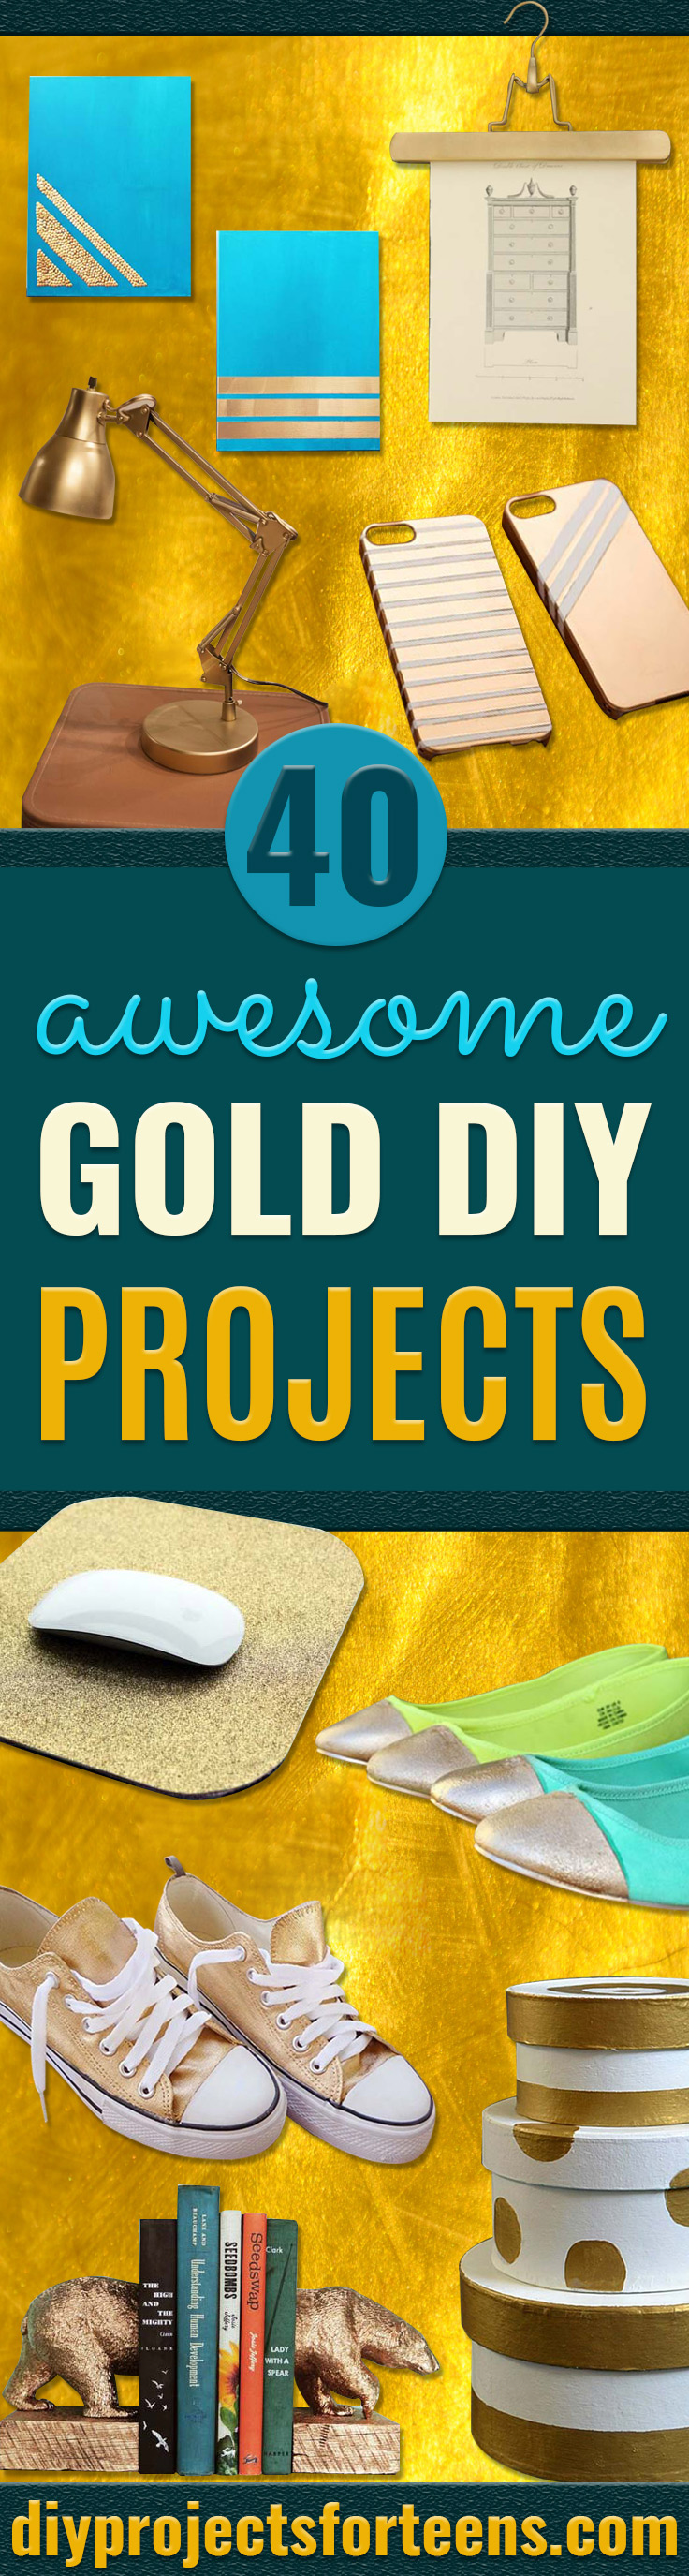 Gold DIY Projects and Crafts - Easy Room Decor, Wall Art and Accessories in Gold - Spray Paint, Painted Ideas, Creative and Cheap Home Decor - Projects and Crafts for Teens, Apartments, Adults and Teenagers http://diyprojectsforteens.com/diy-projects-gold